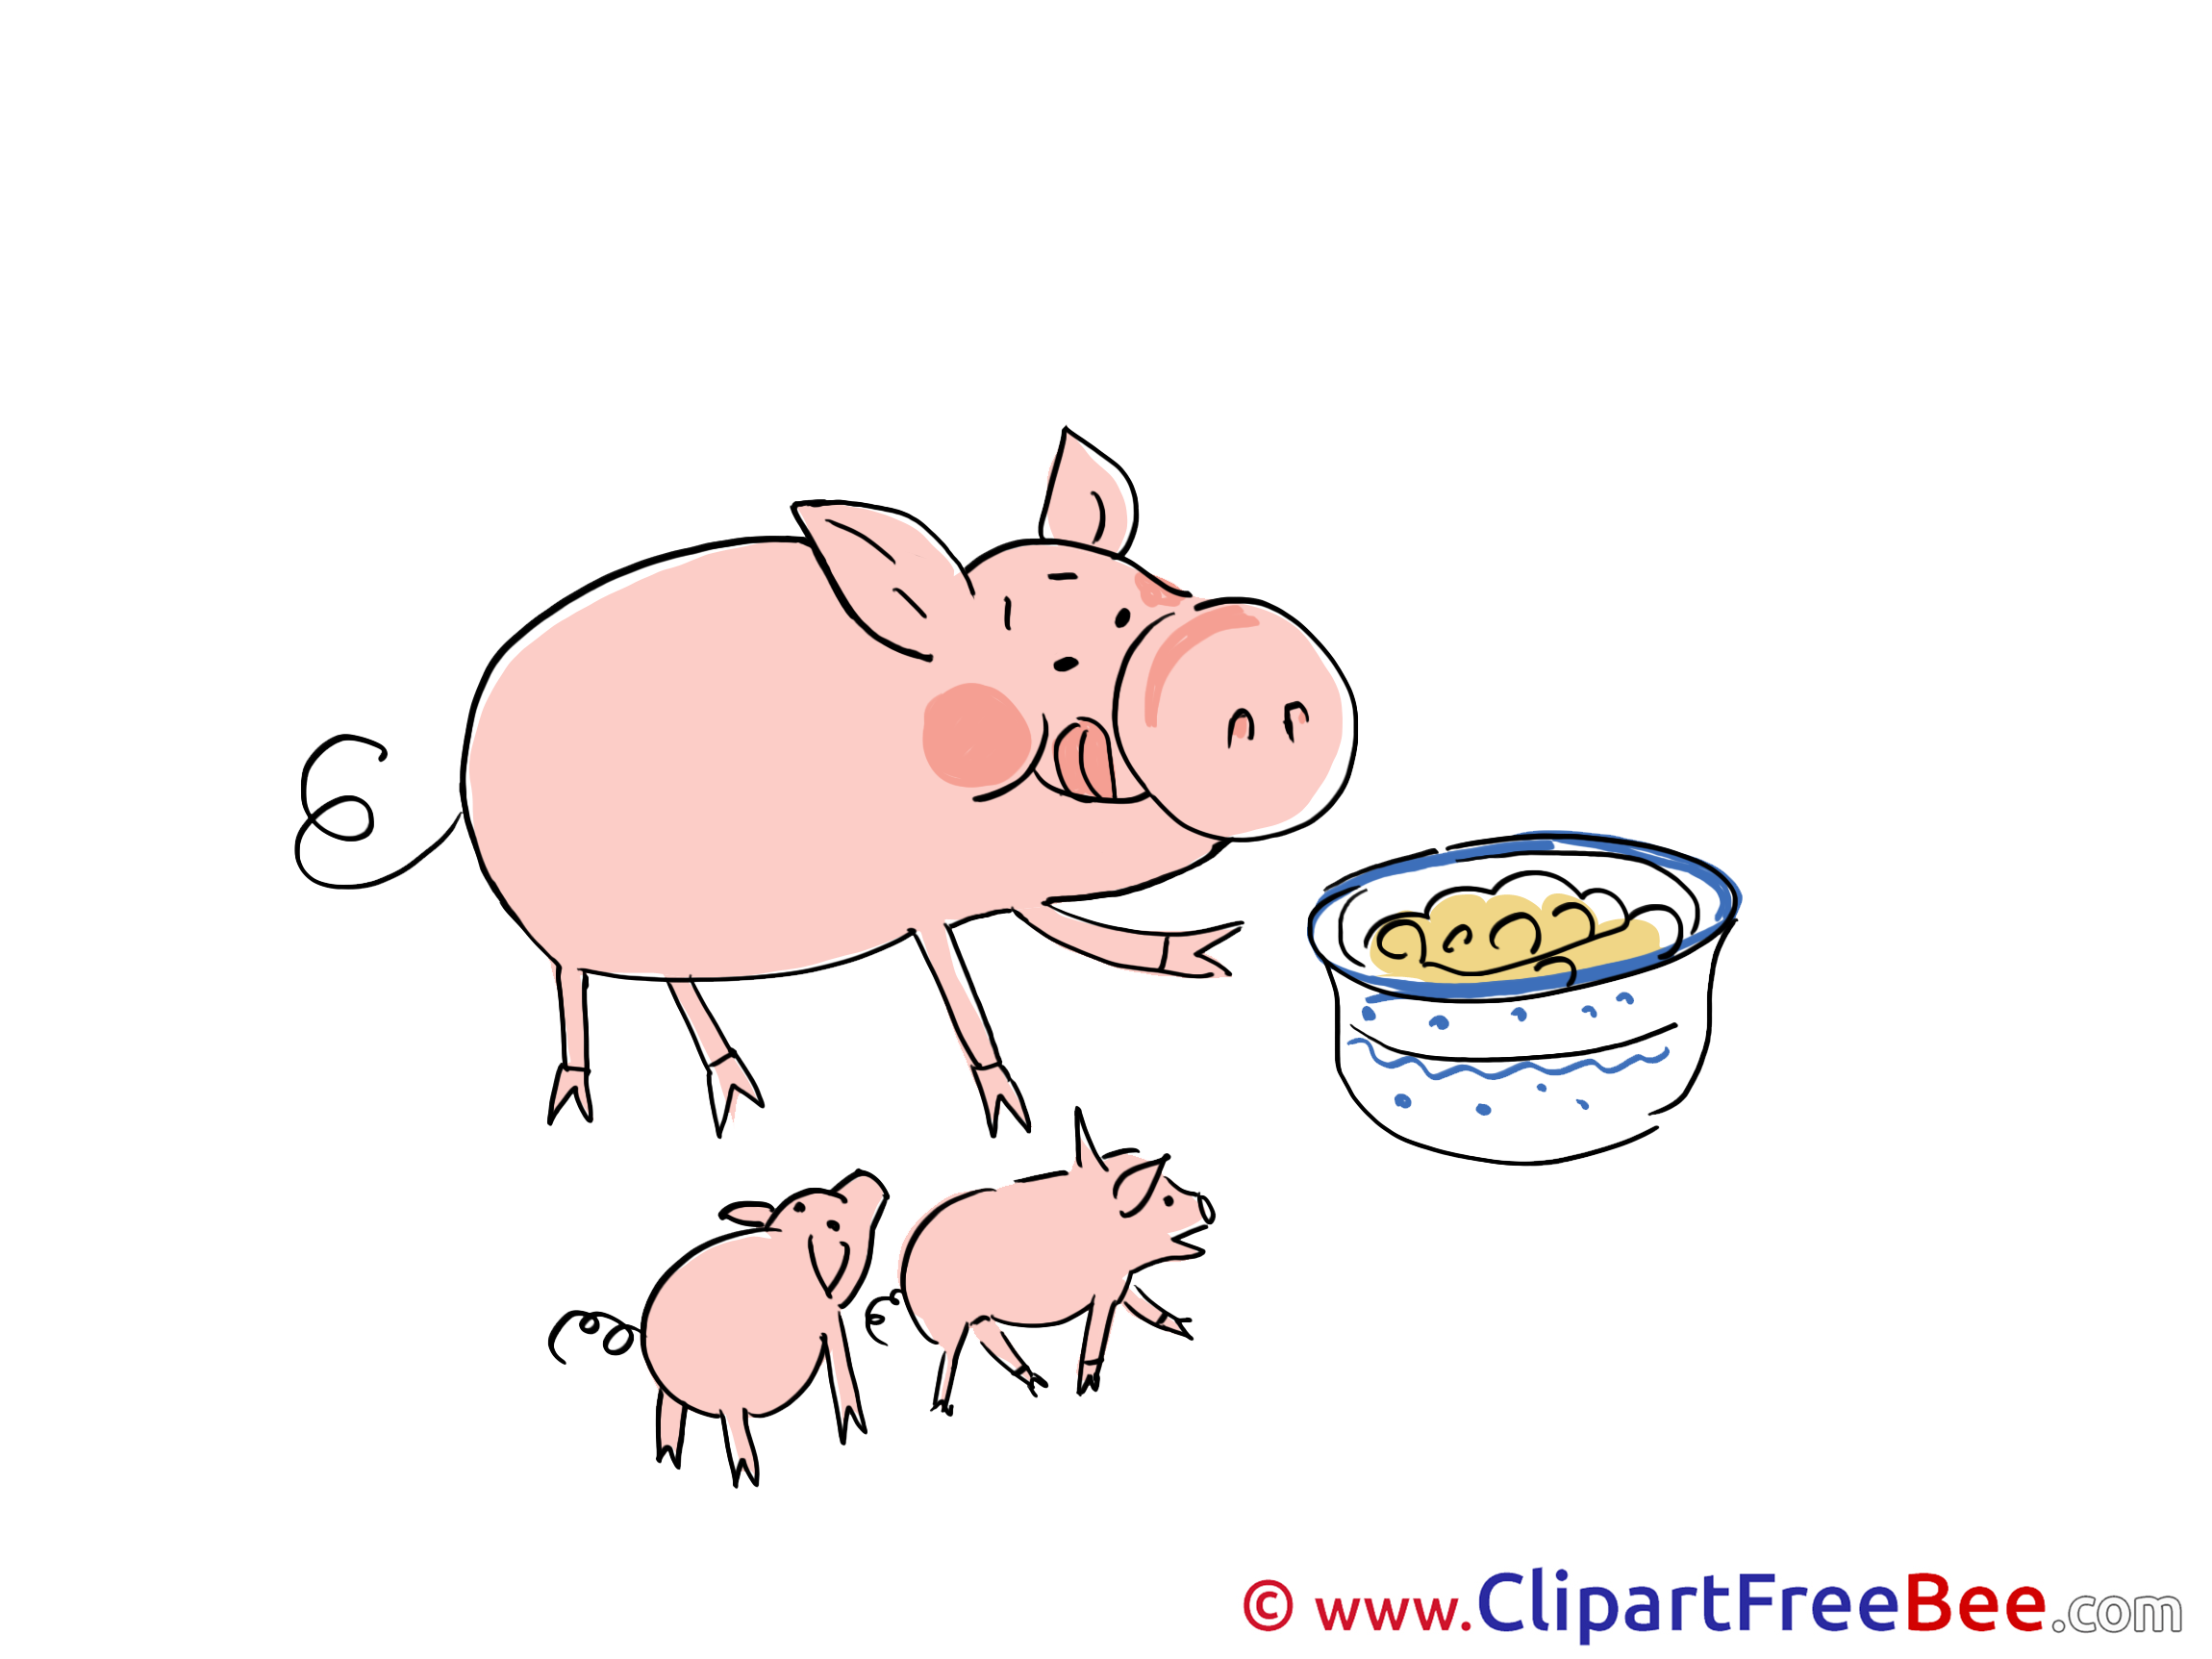 Food Piggs printable Images for download